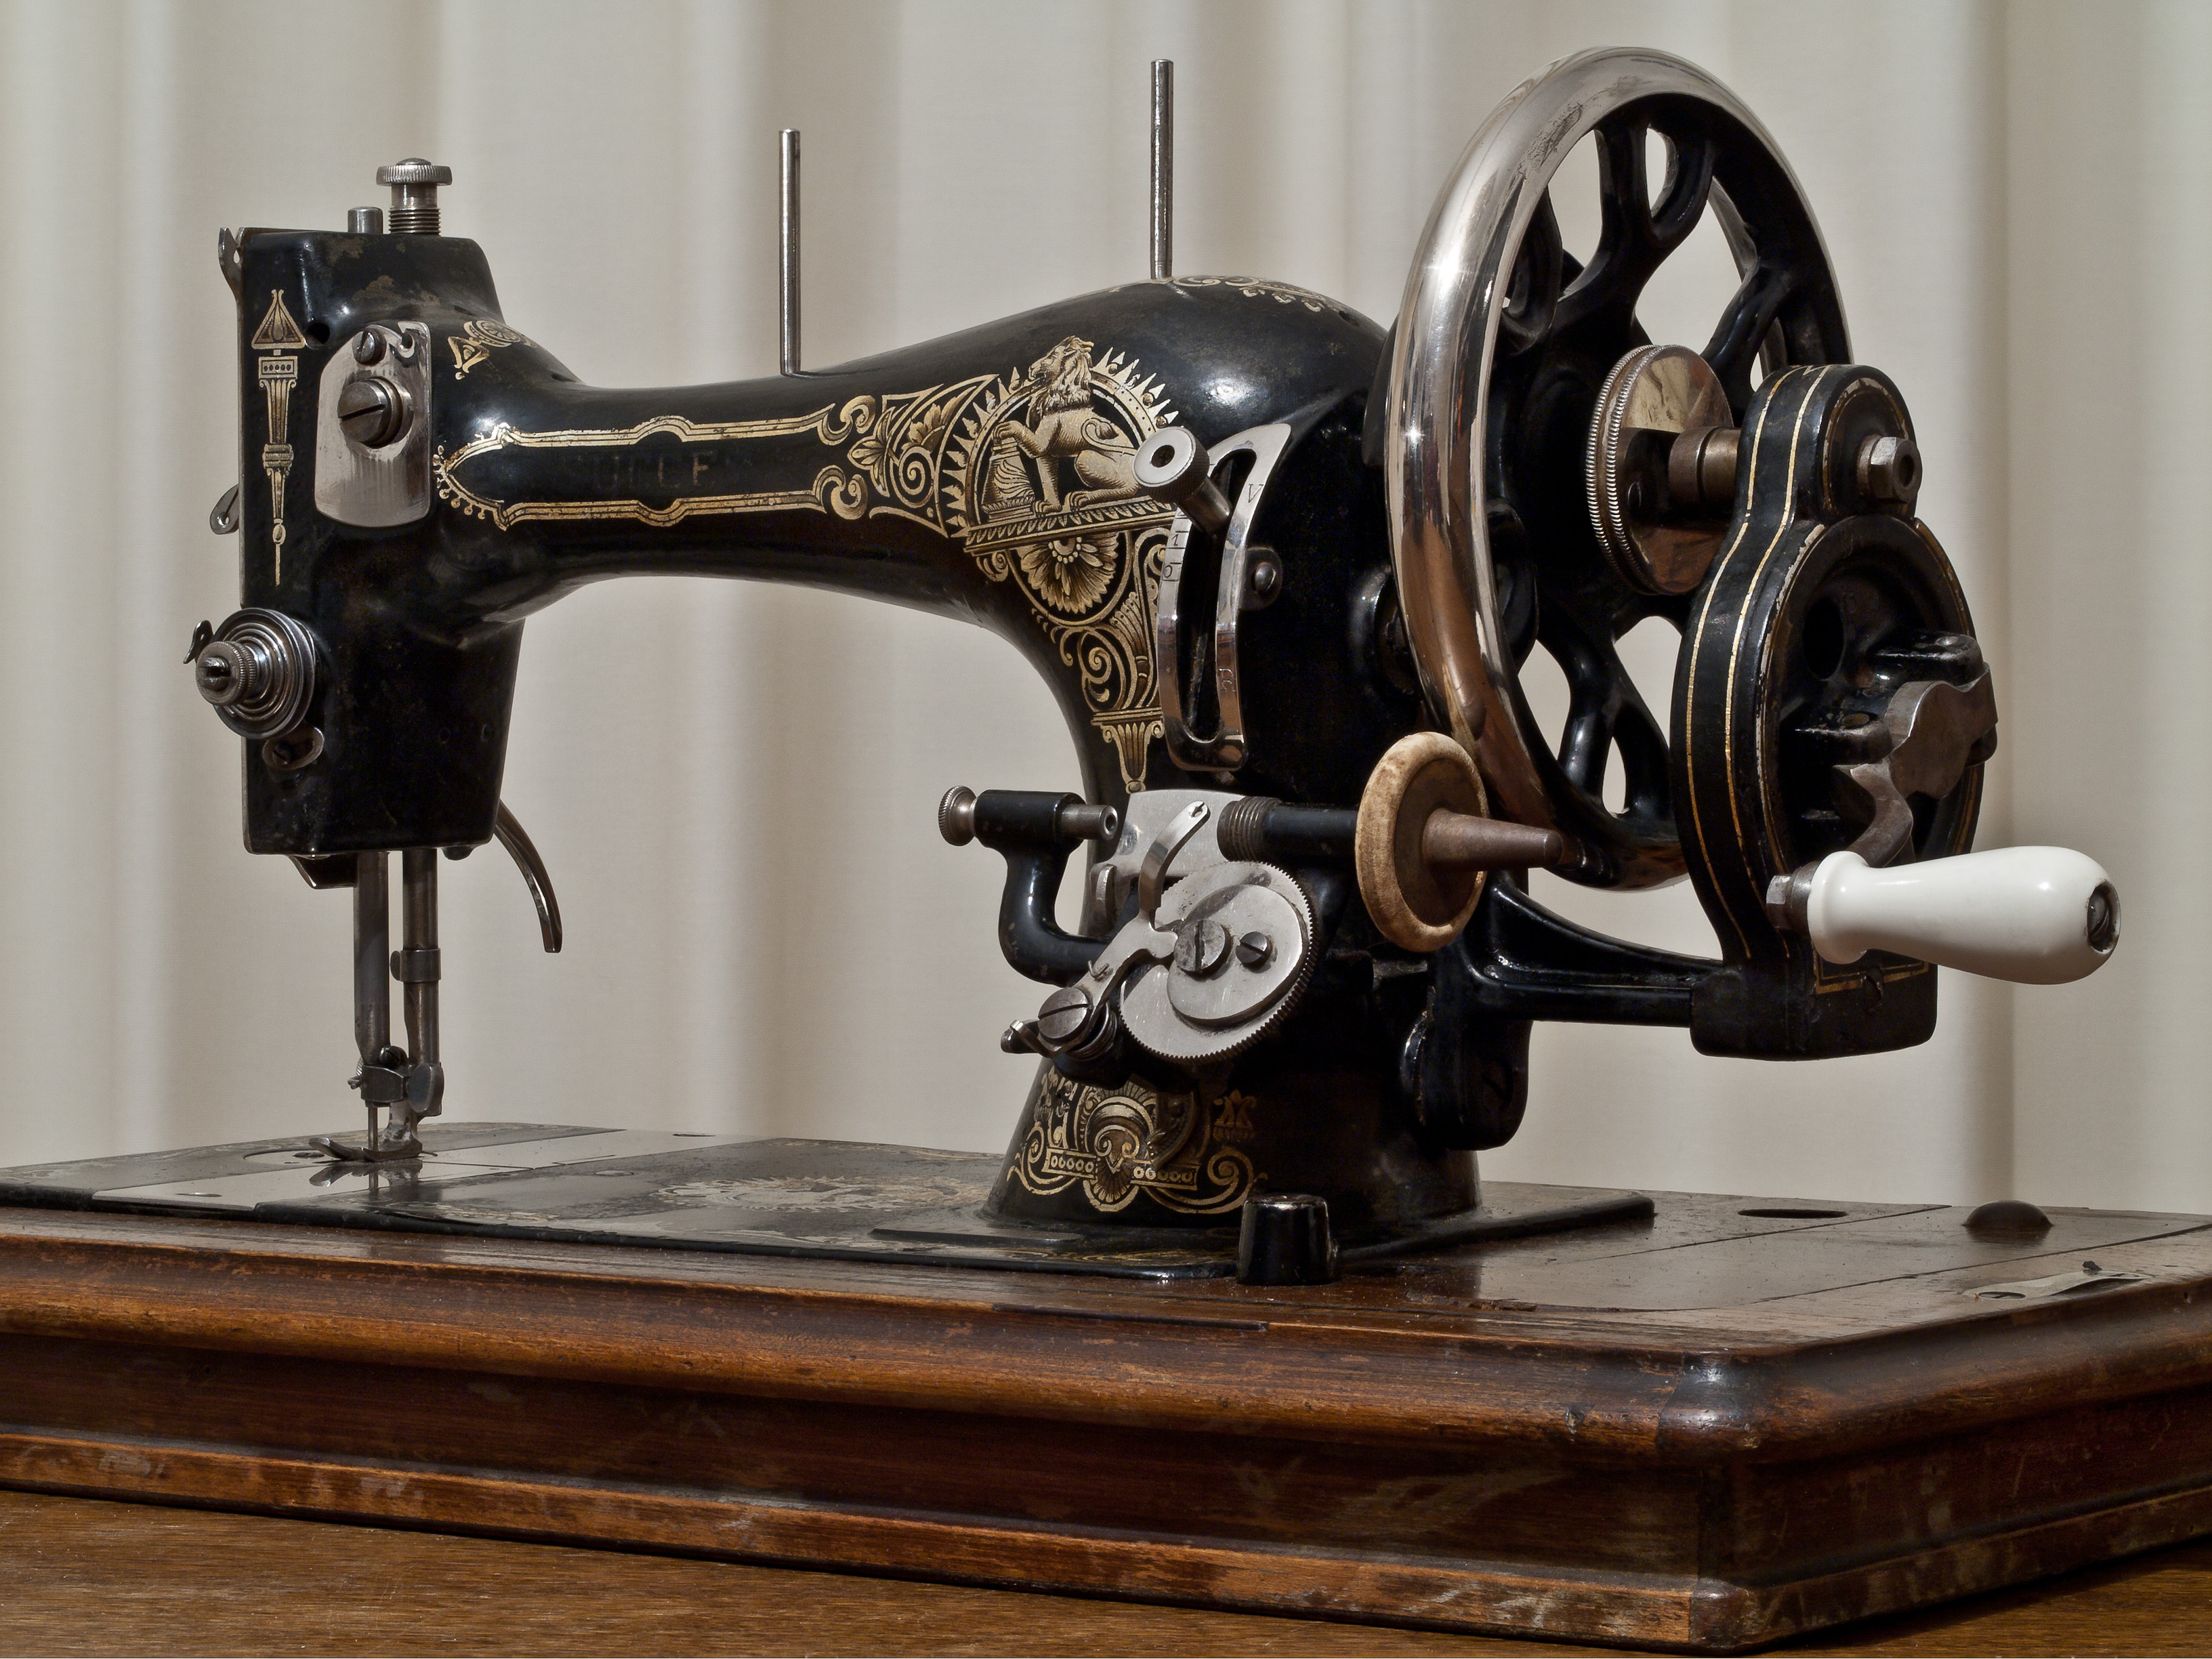 Succes_vintage_sewing_machine